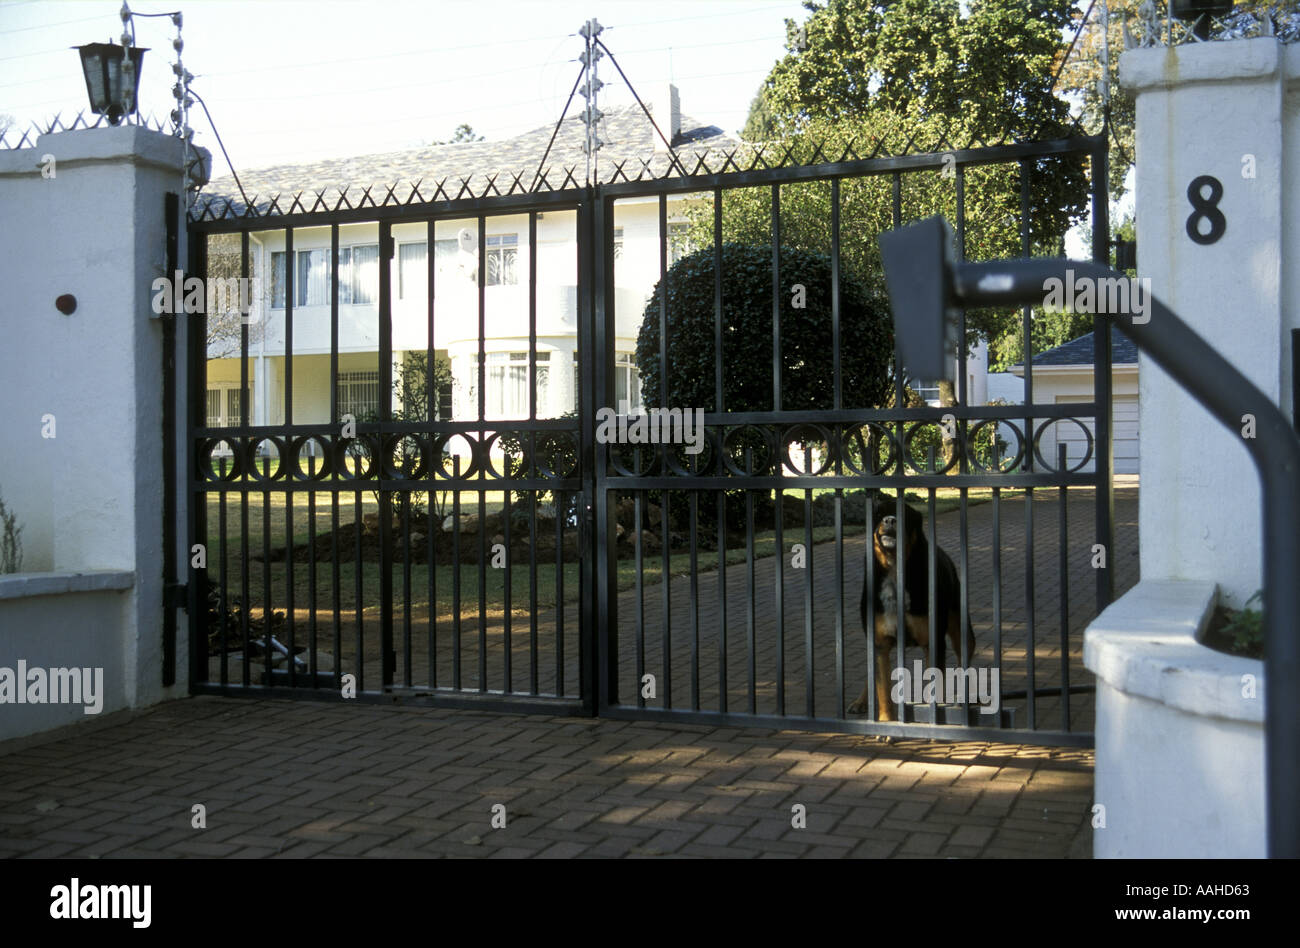 Luxury Home Entrance Elaborate Wrought Iron Gates At Entrance To Luxury Home In